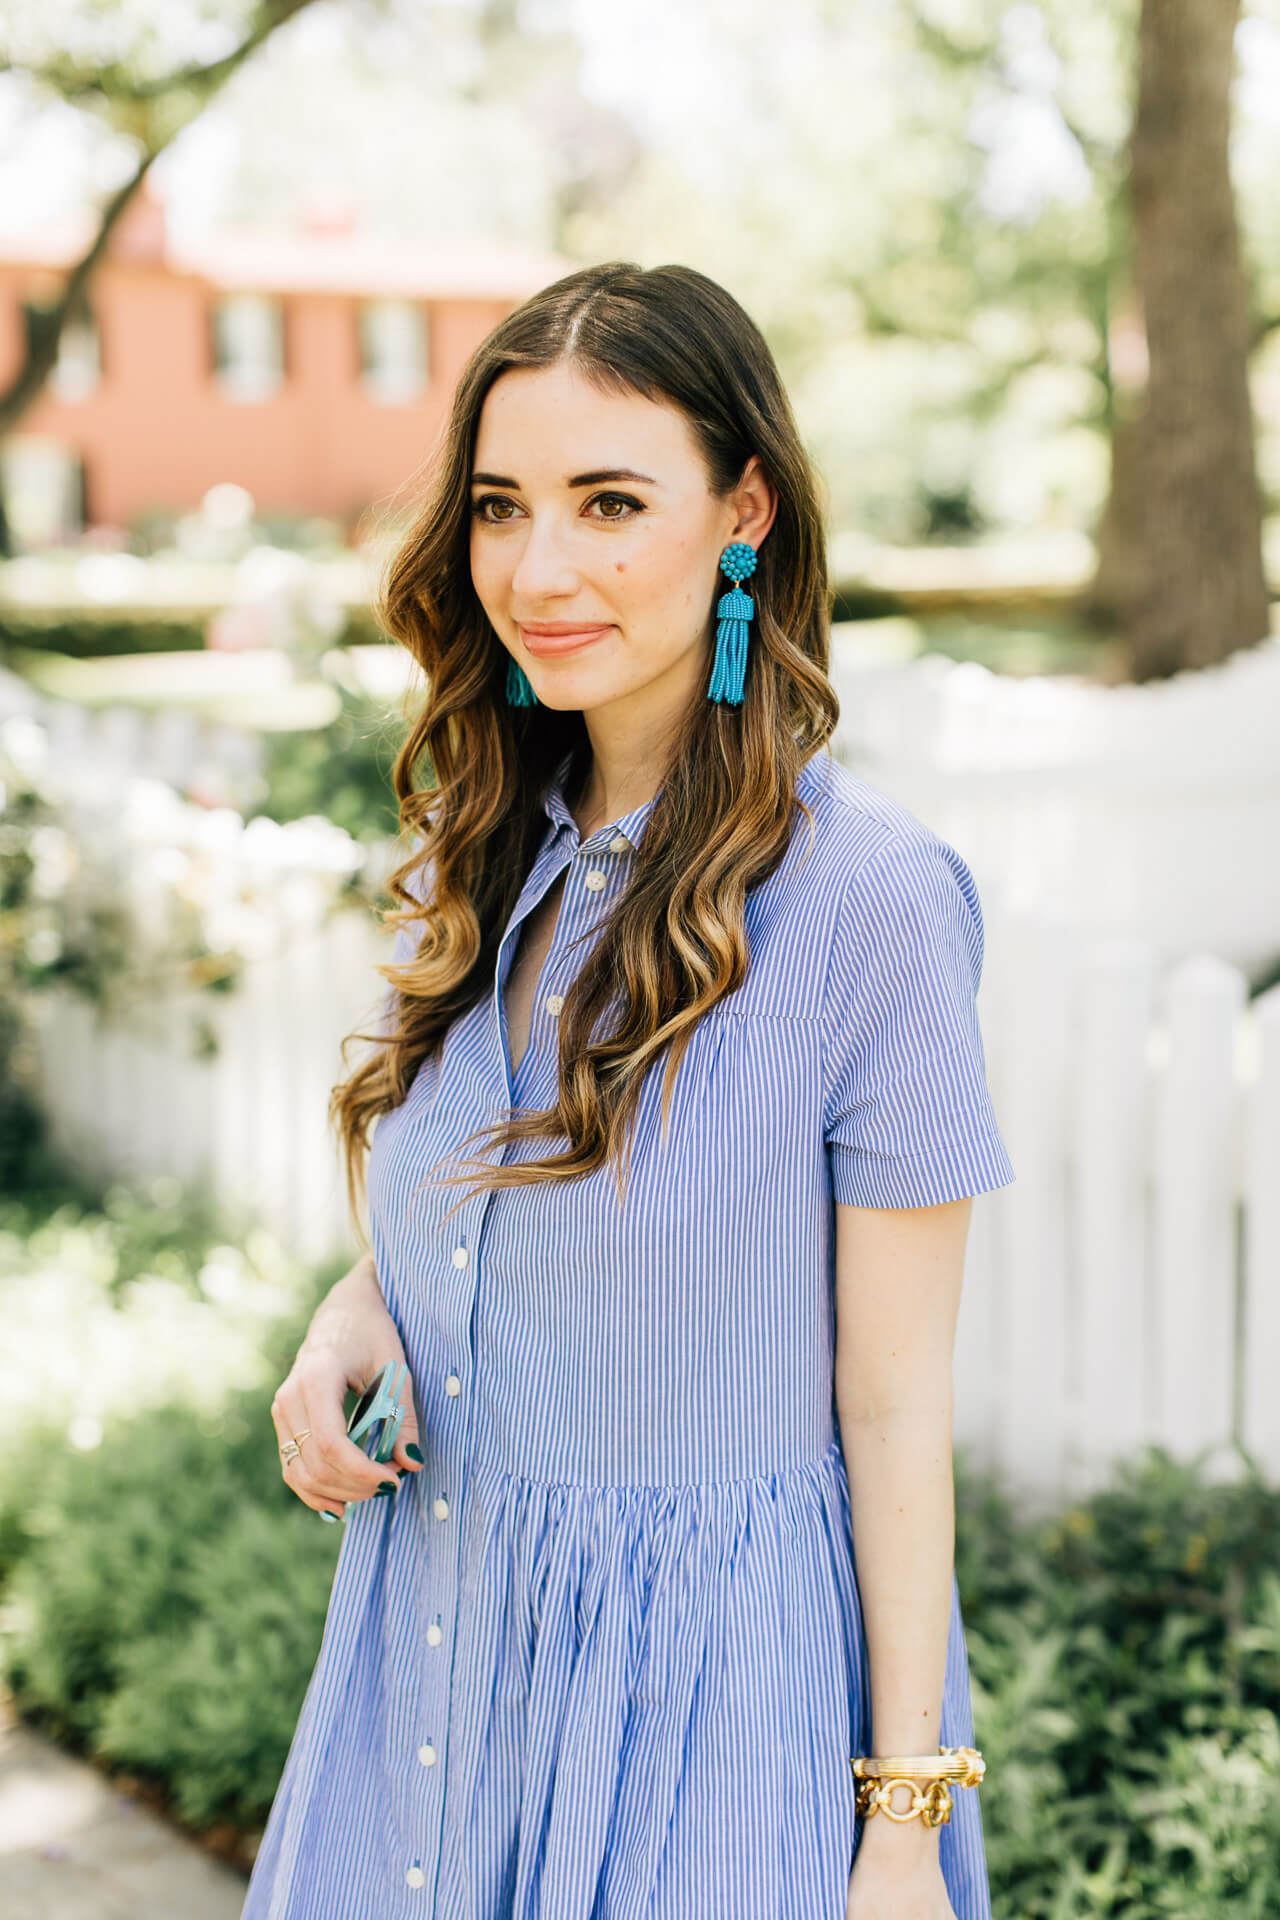 blue striped dress with blue tassel earrings- blue and white outfit inspiration for spring